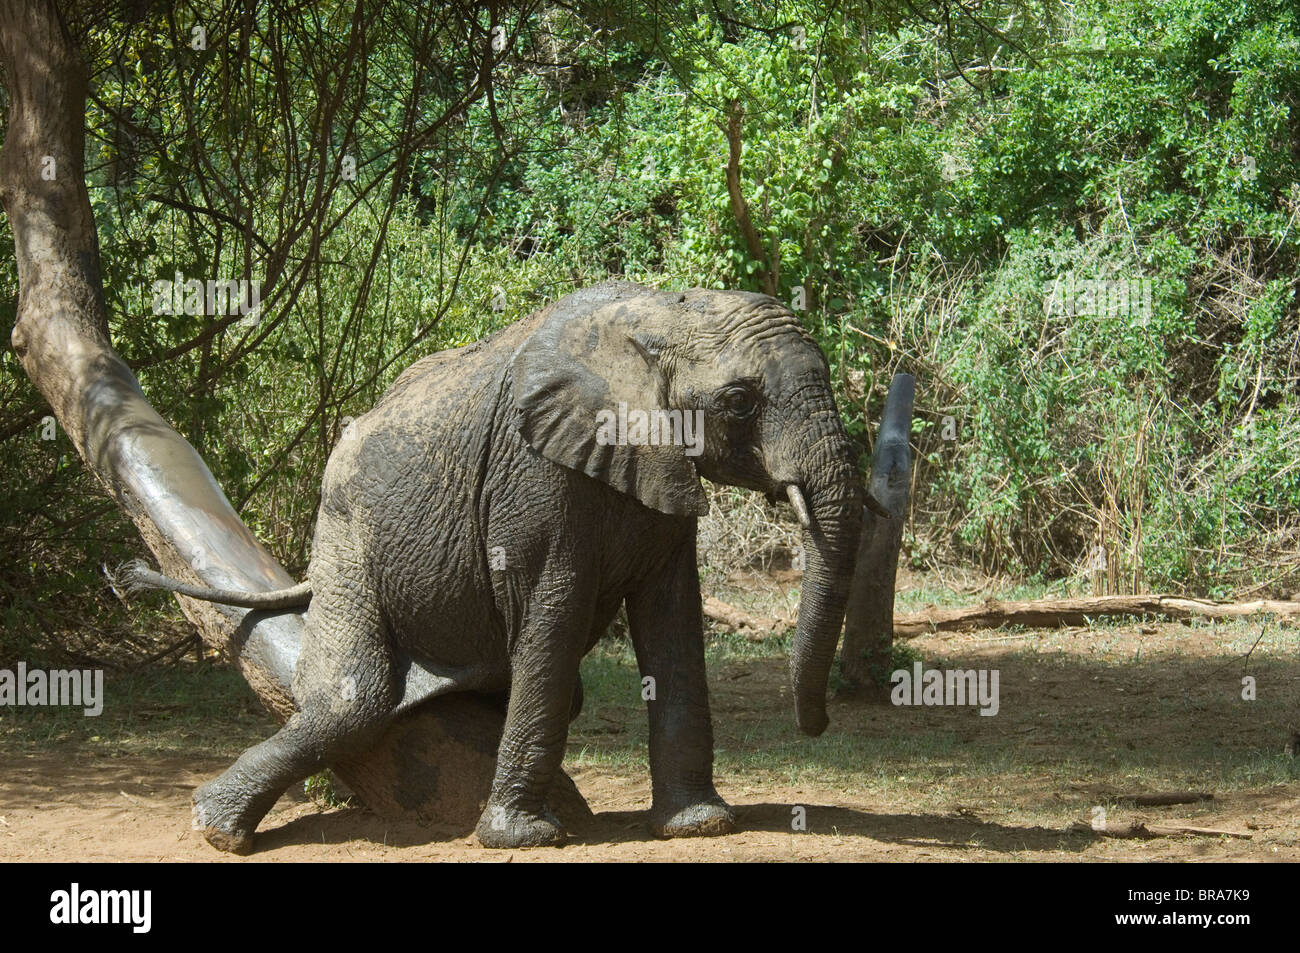 ELEPHANT SCRATCHING REAR END ON TREE TRUNK LAKE MANYARA NATIONAL PARK TANZANIA AFRICA - Stock Image